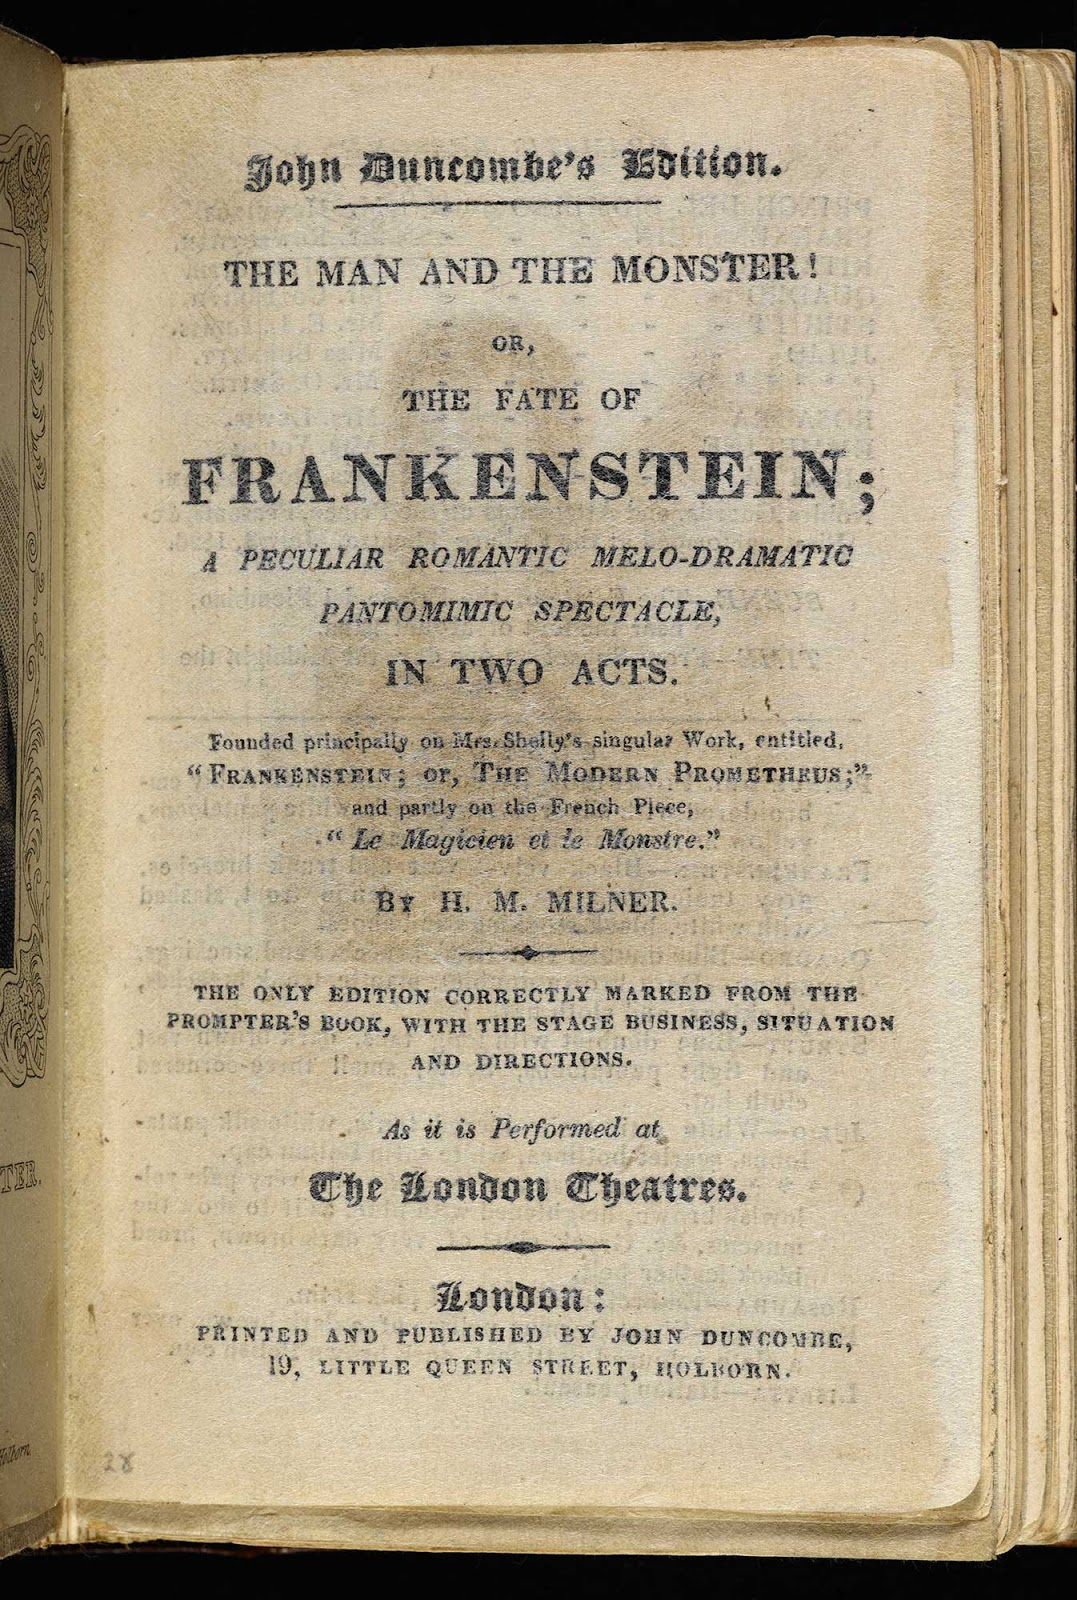 The fate of frankenstein in the novel by mary shelley